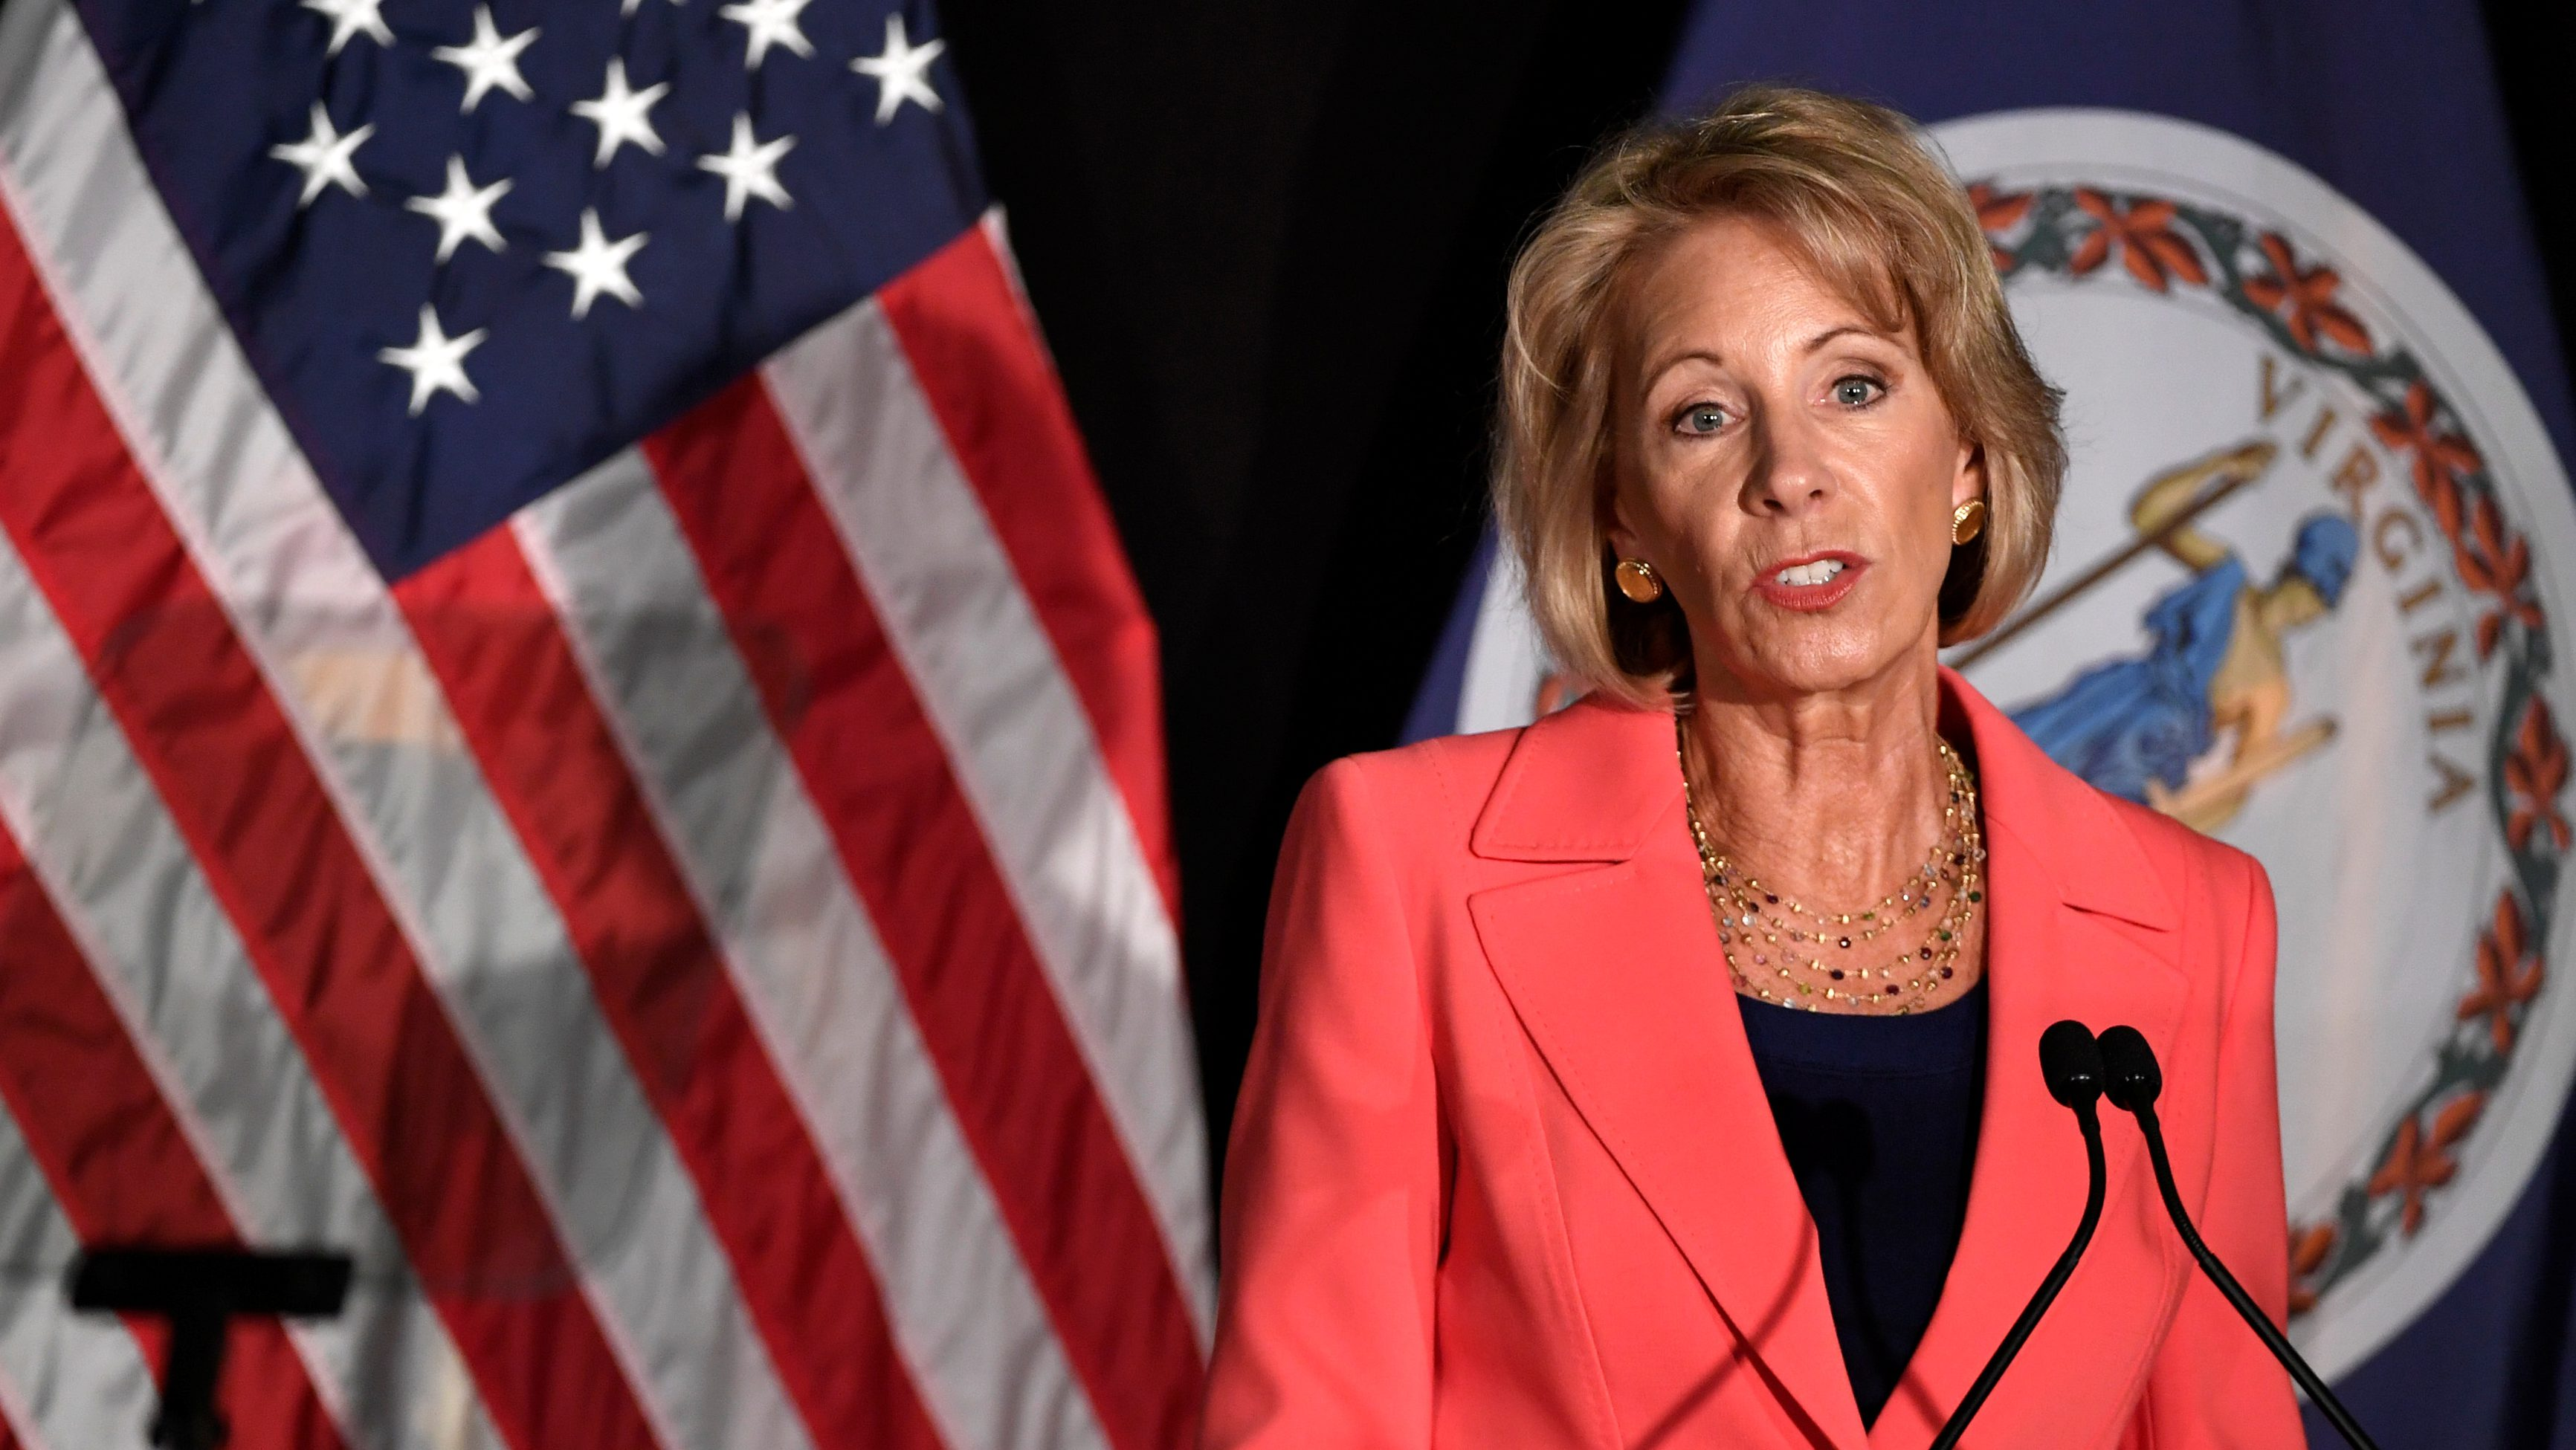 Education Secretary Betsy DeVos makes remarks during a major policy address on Title IX enforcement, which in college covers sexual harassment, rape and assault, at George Mason University, in Arlington, Virginia, U.S., September 7, 2017.           REUTERS/Mike Theiler - RC1A35185890